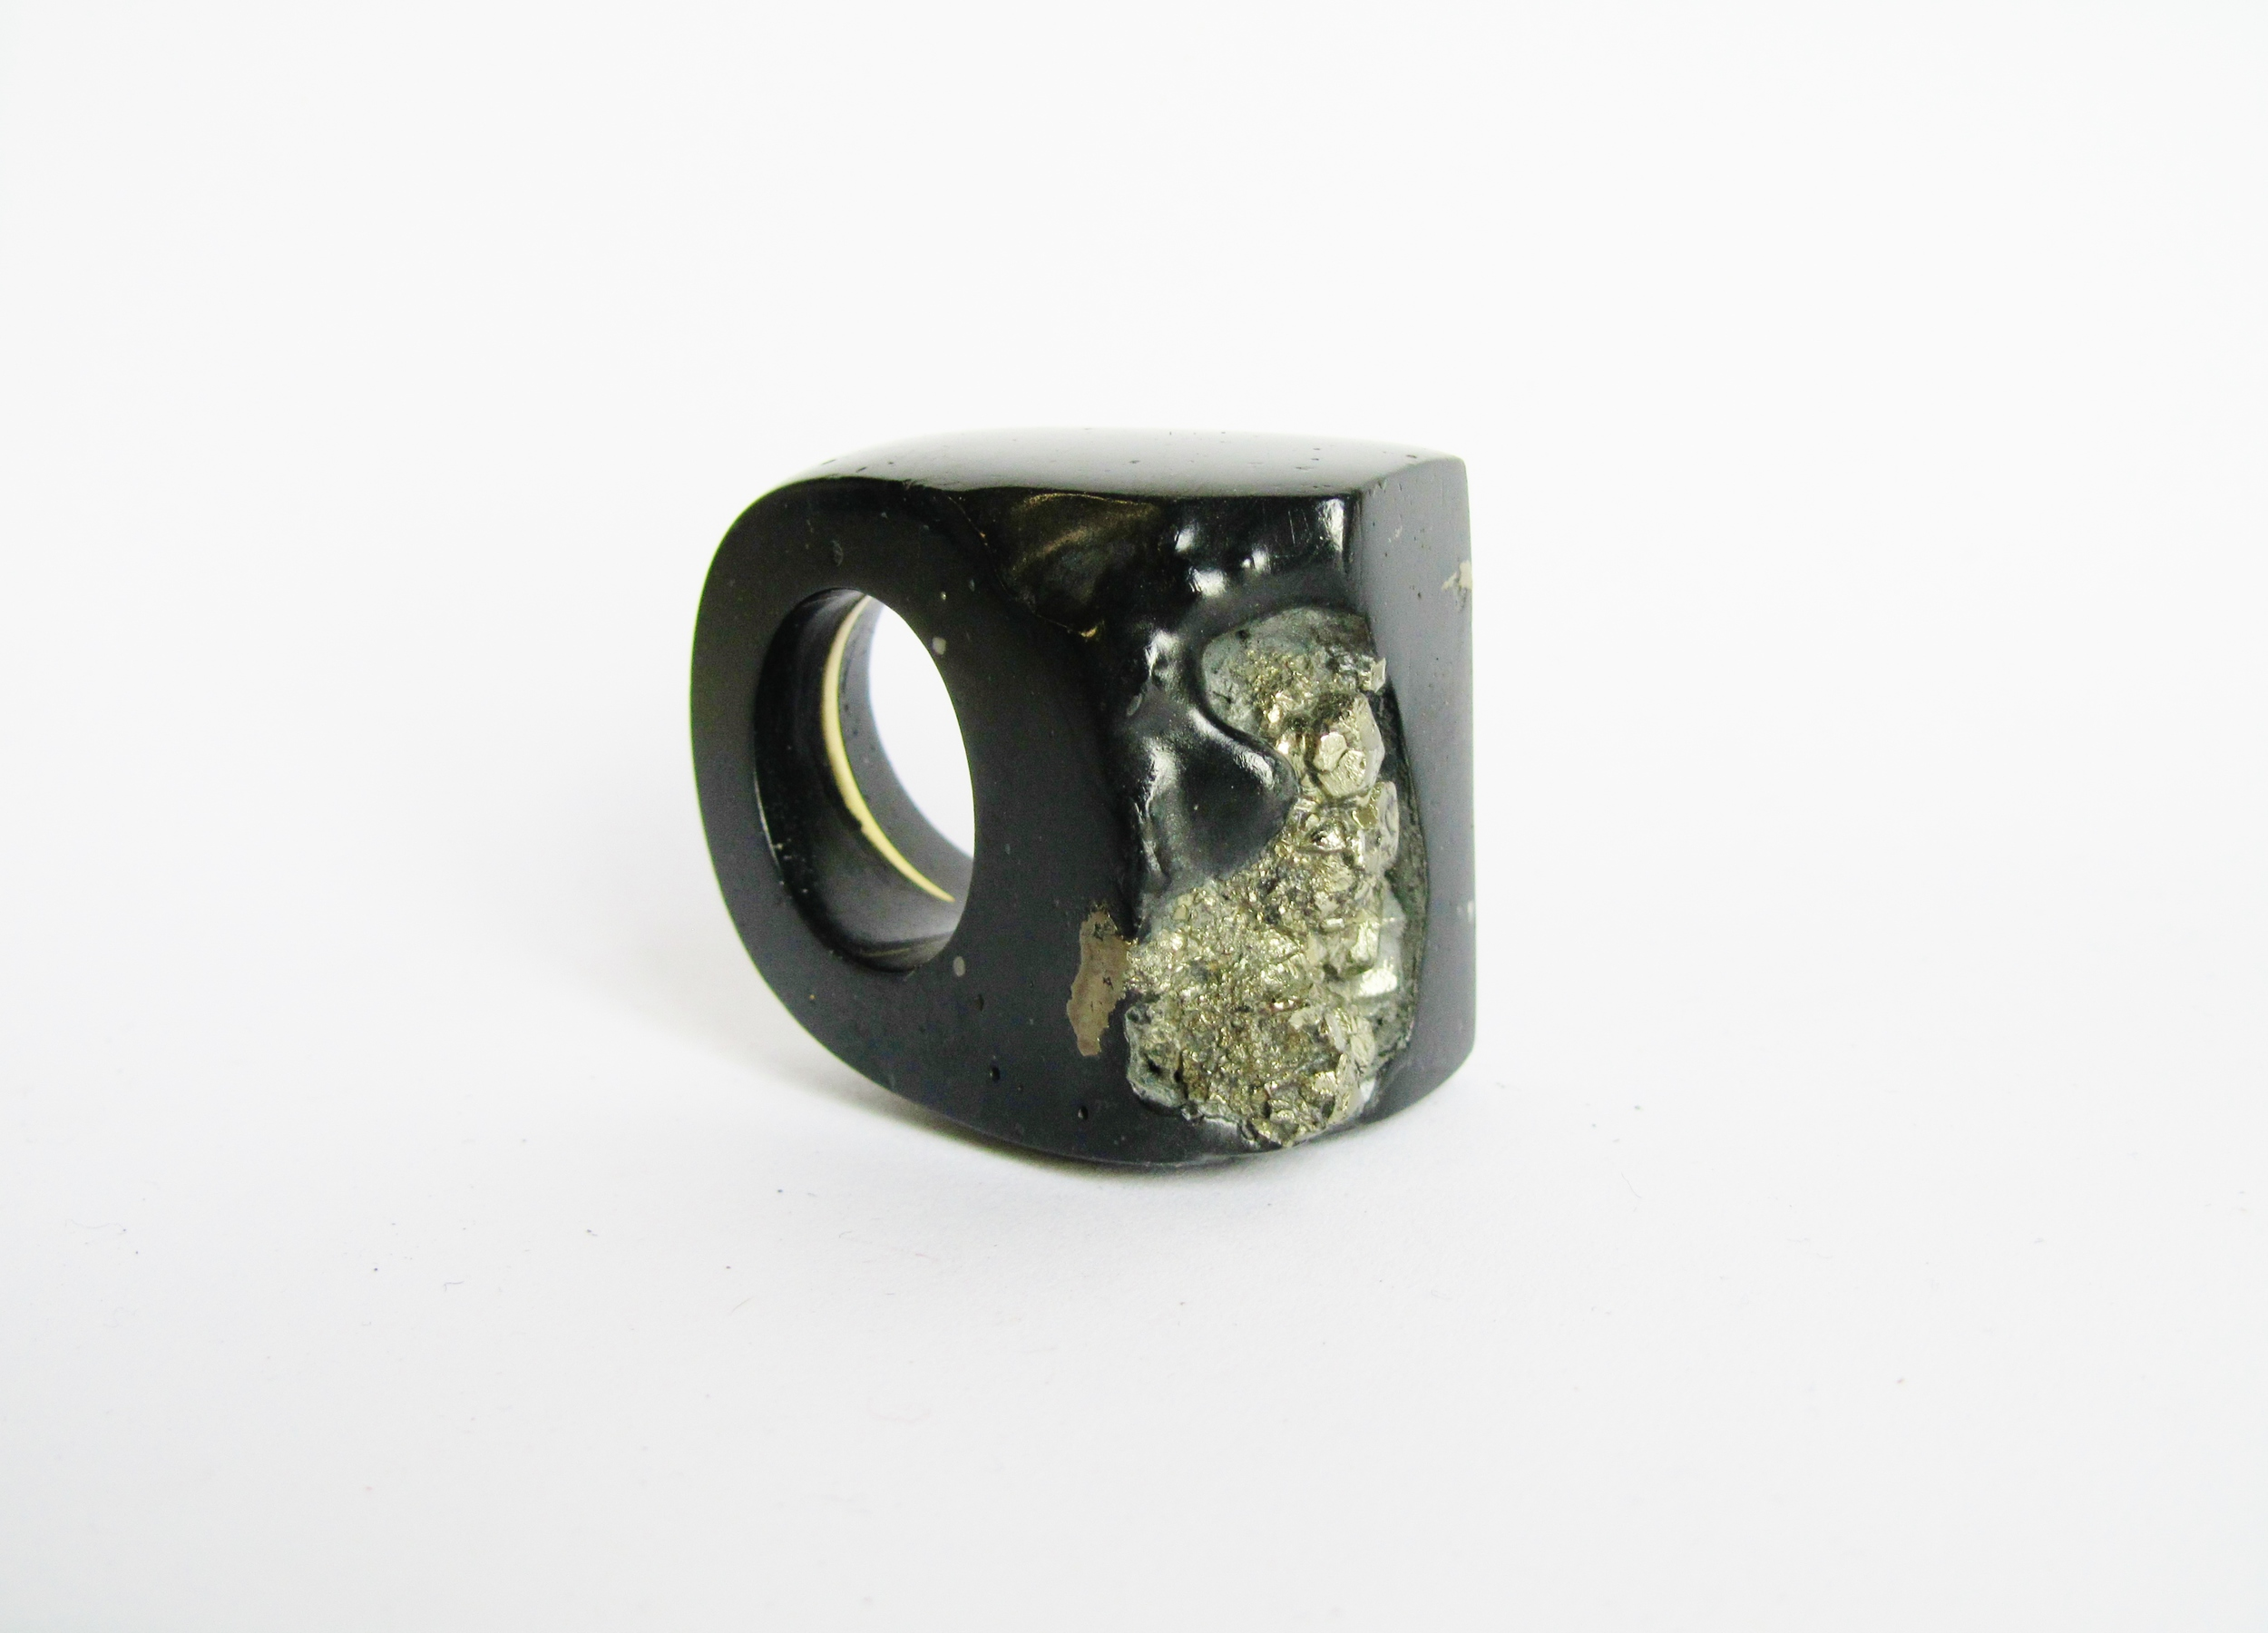 jade mellor fools gold pyrite black giant ring contemporary jewellery craft culture.JPG